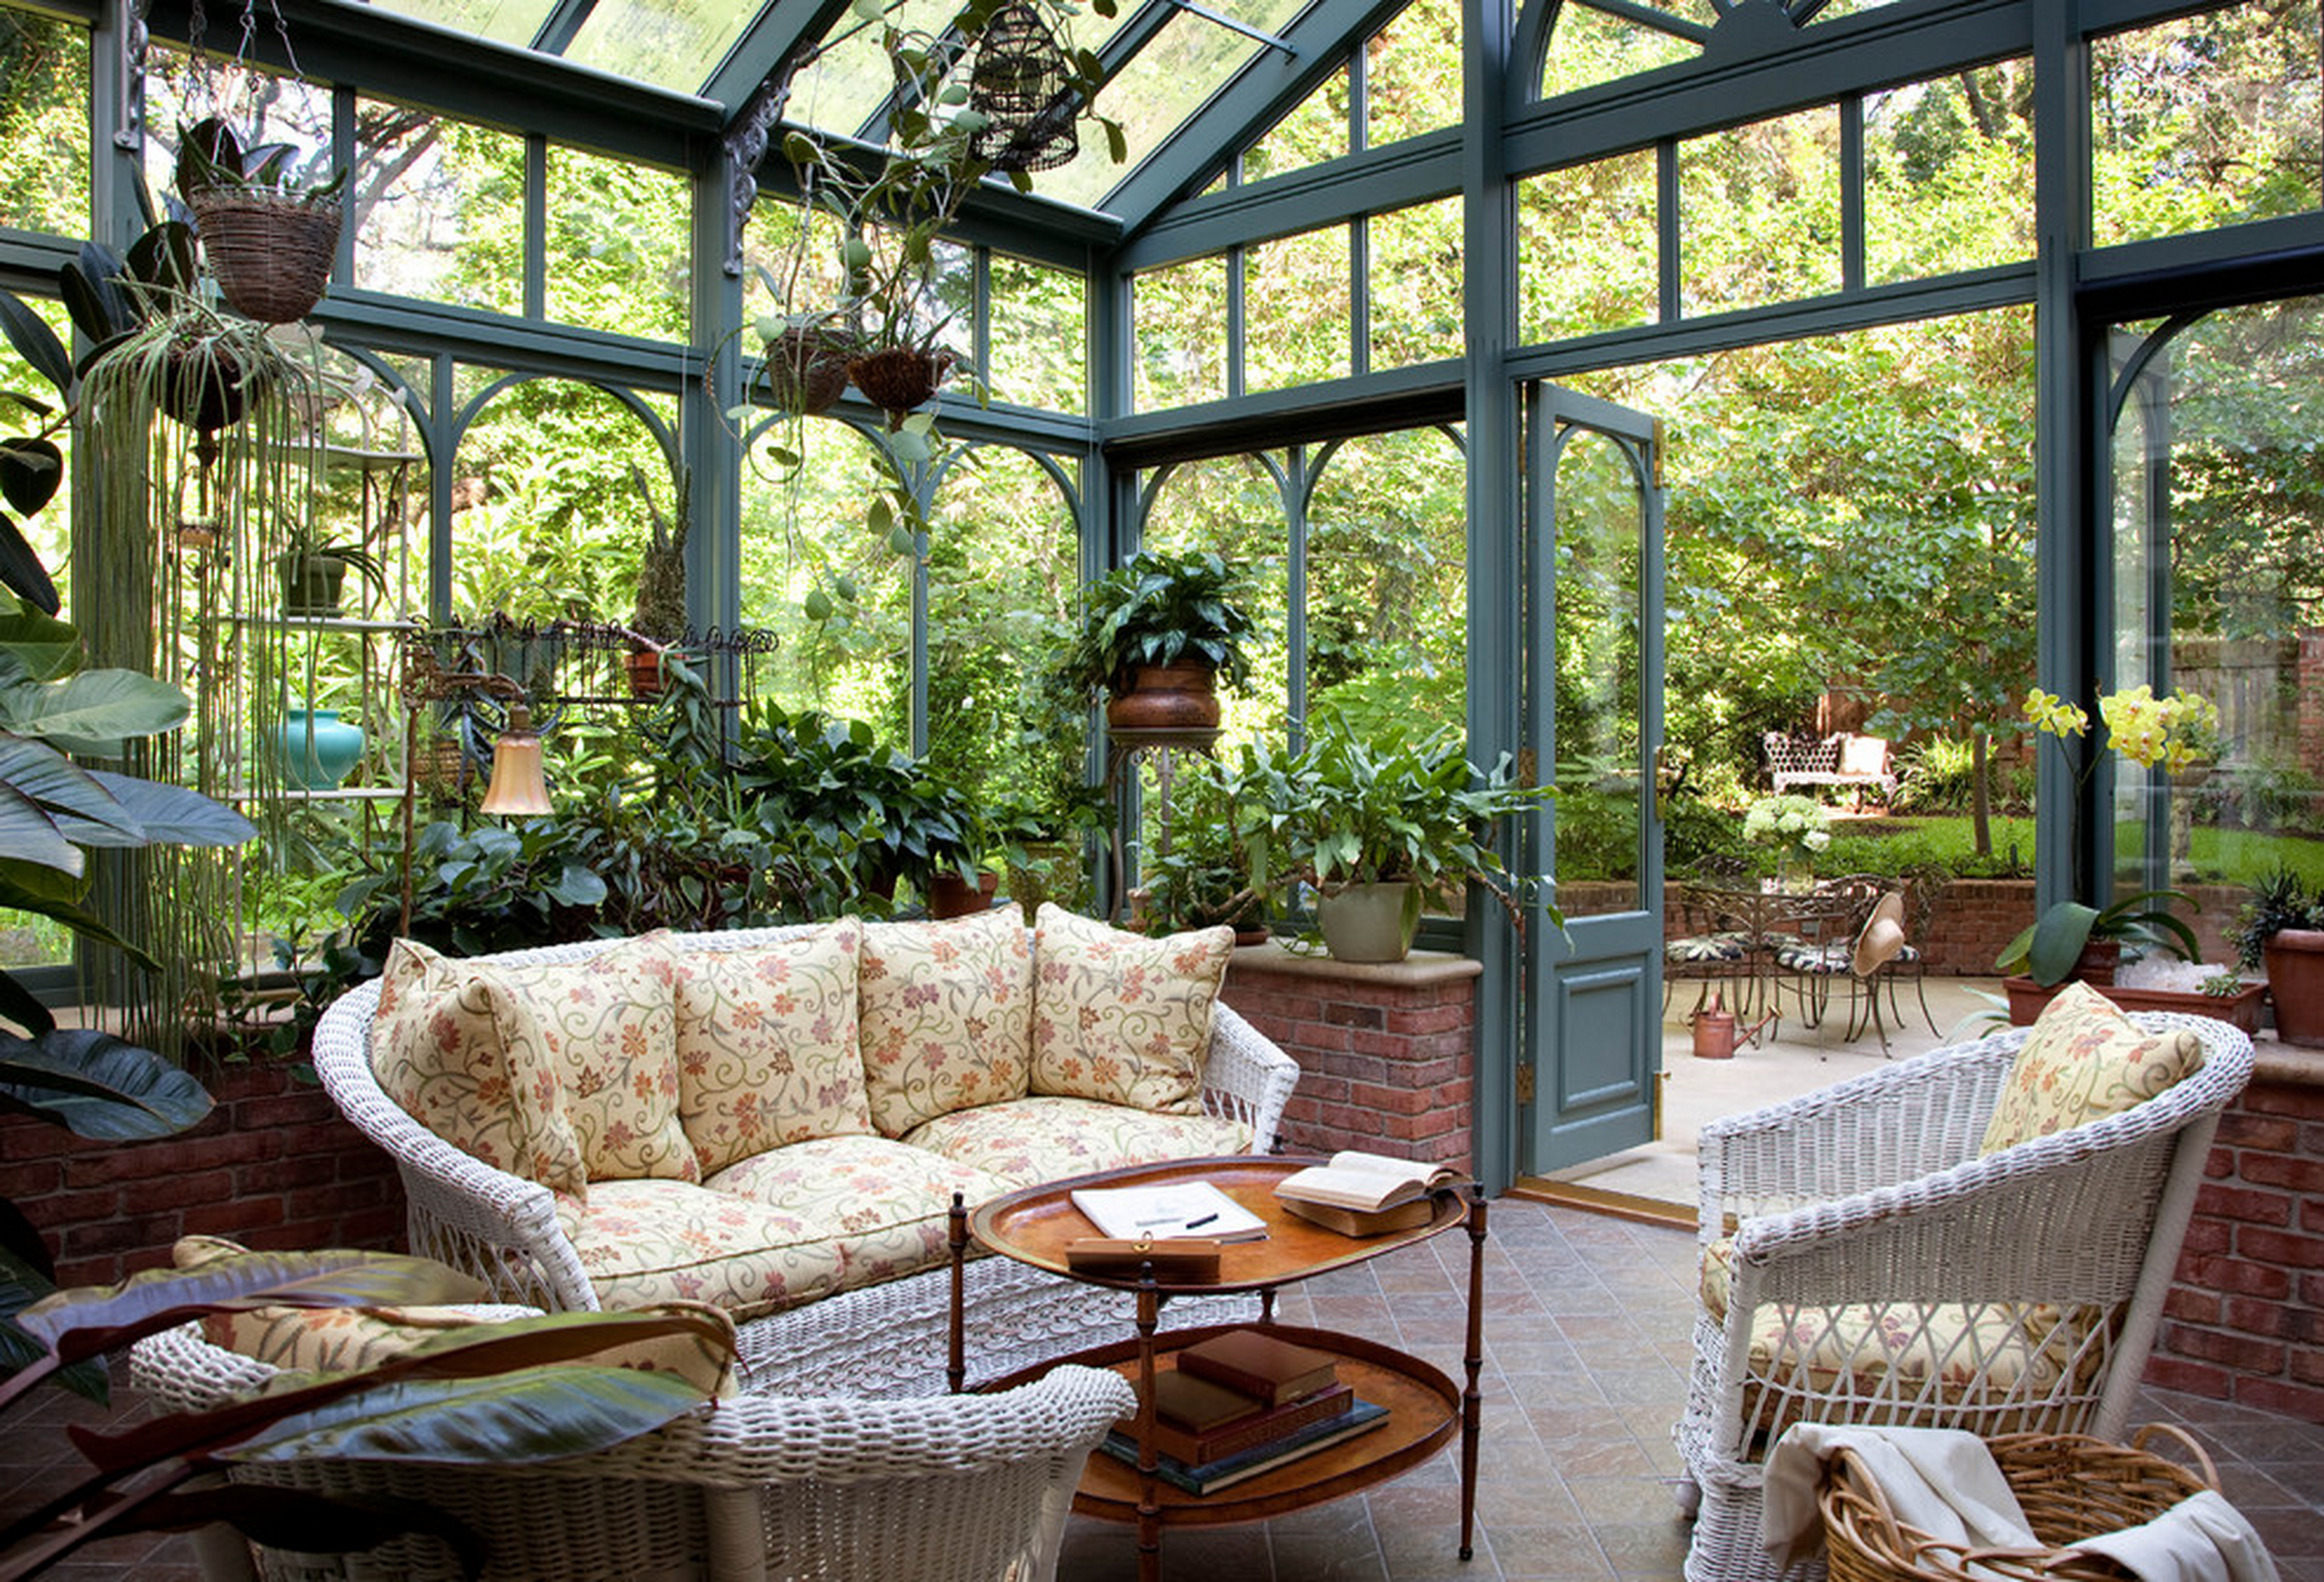 Sun Room And Conservatory So Comfortable And Inviting Sunroom Designs Garden Room Patio